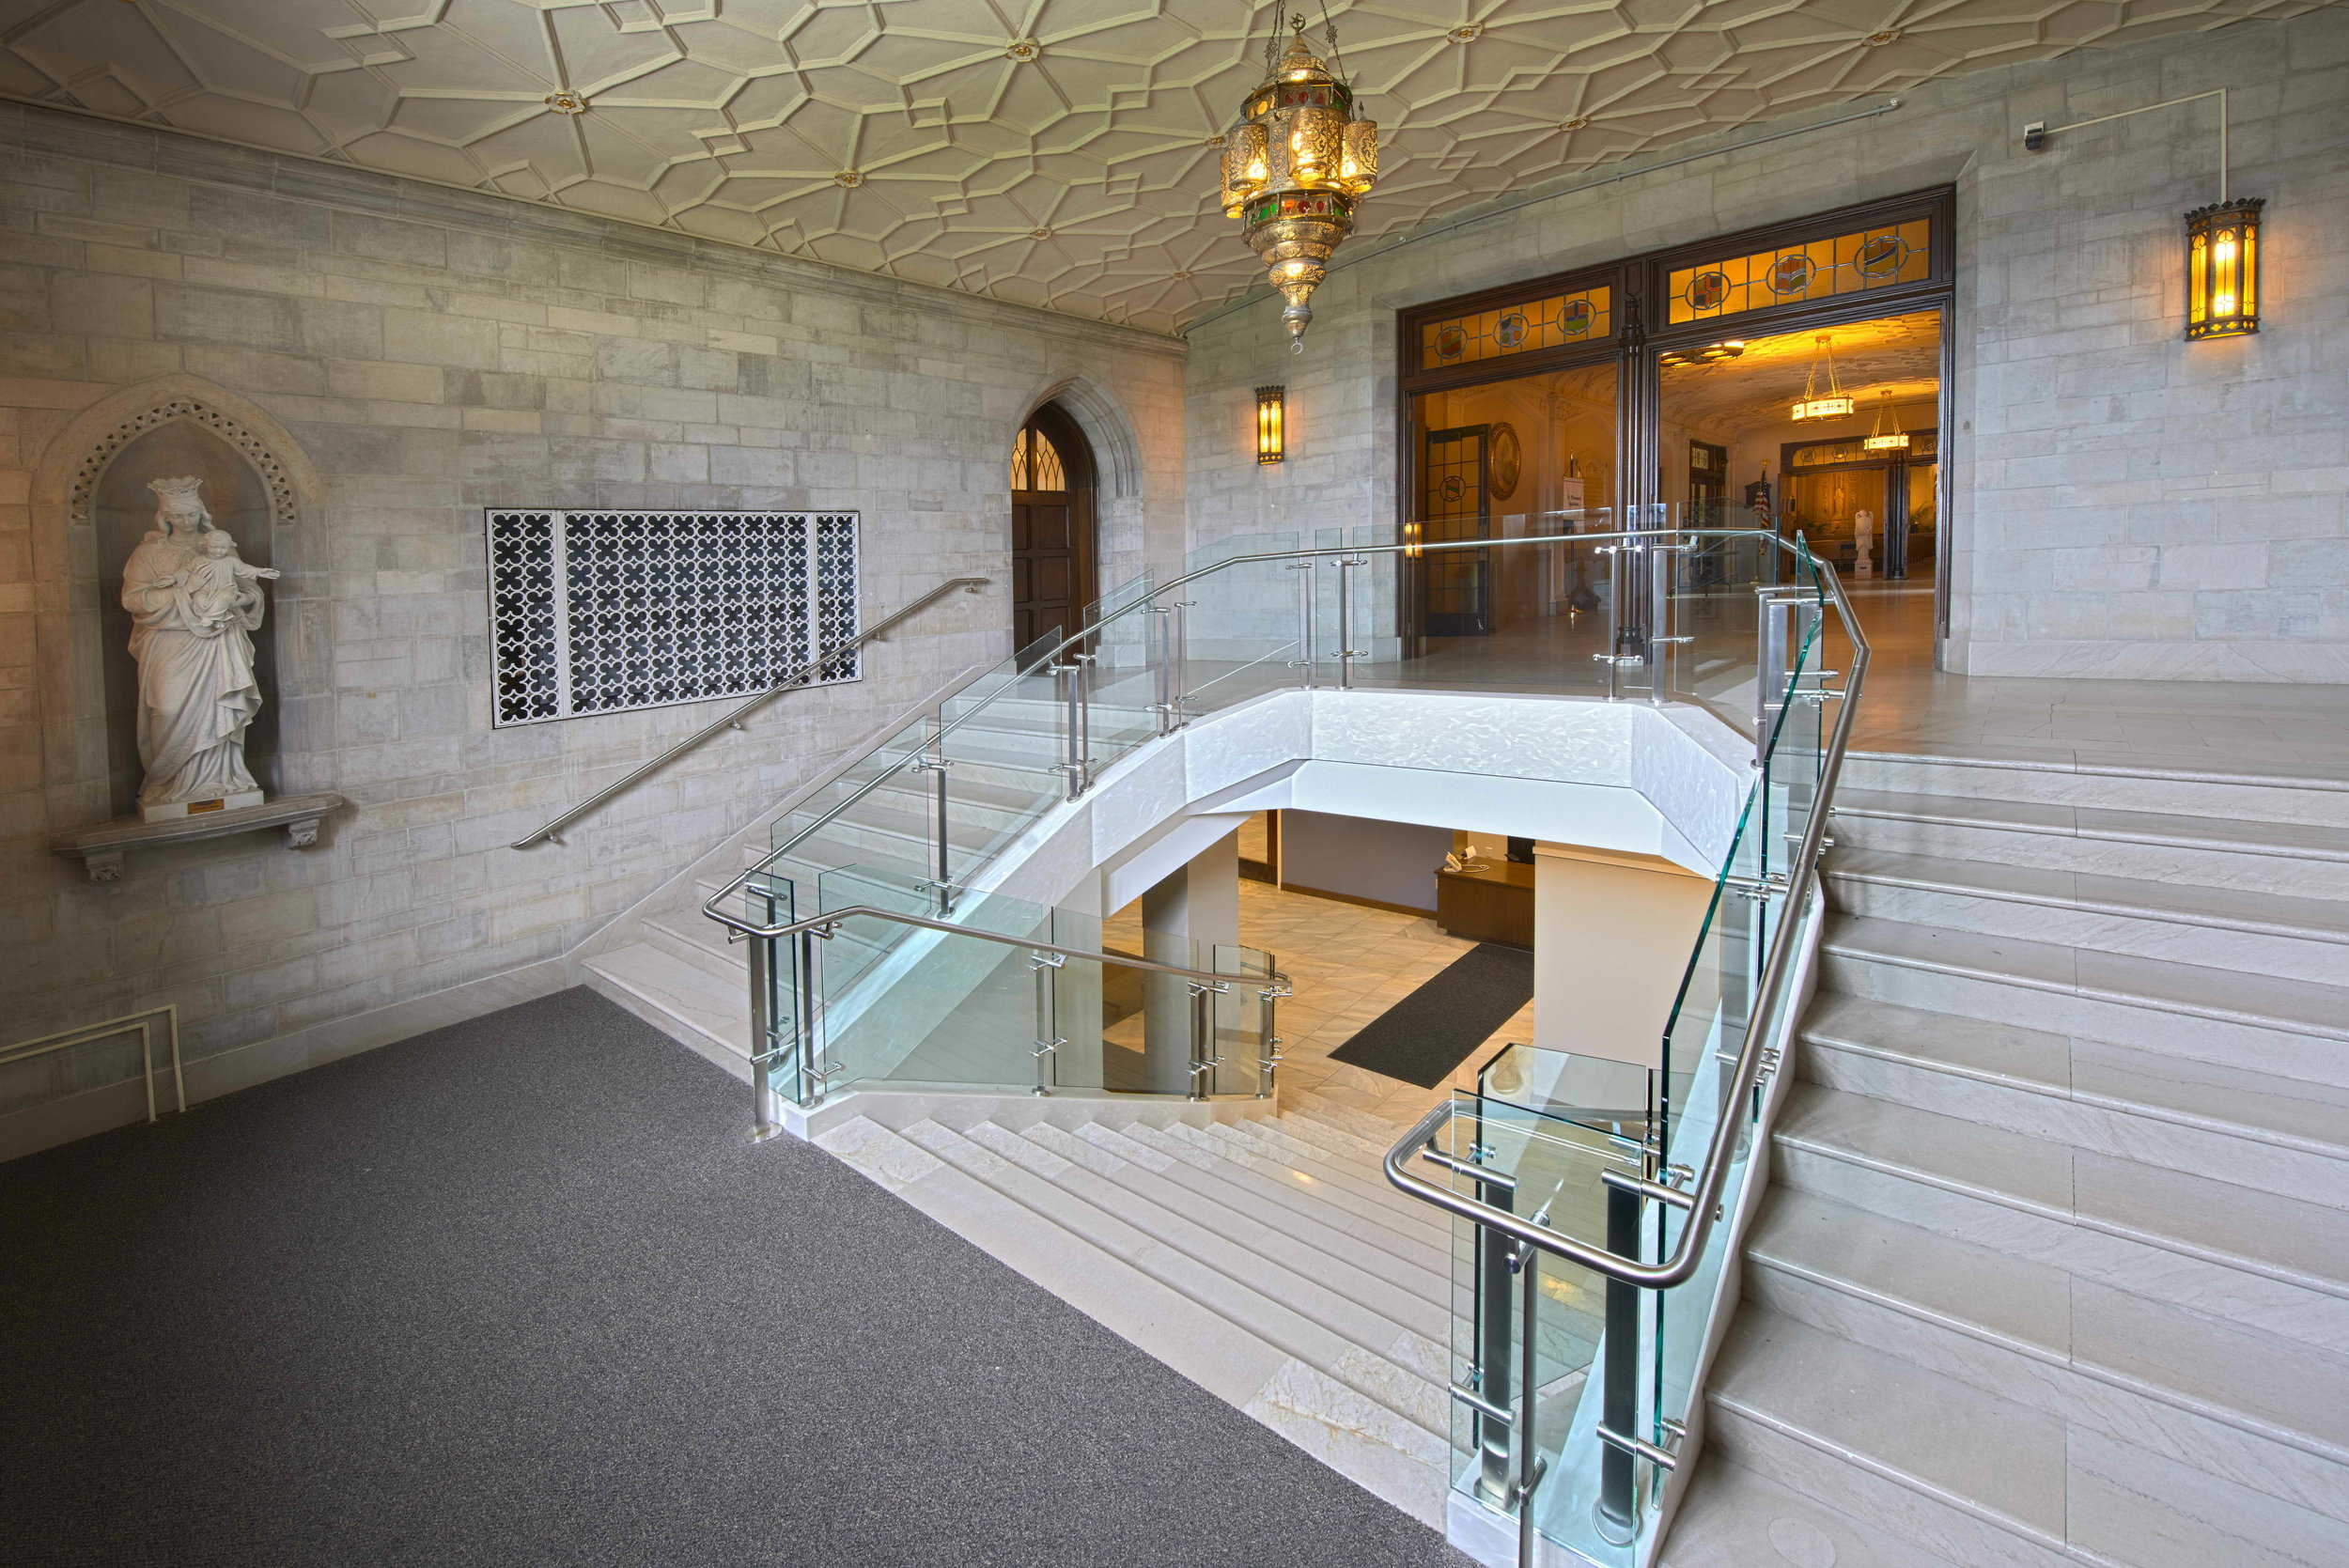 Entrance and Stairway